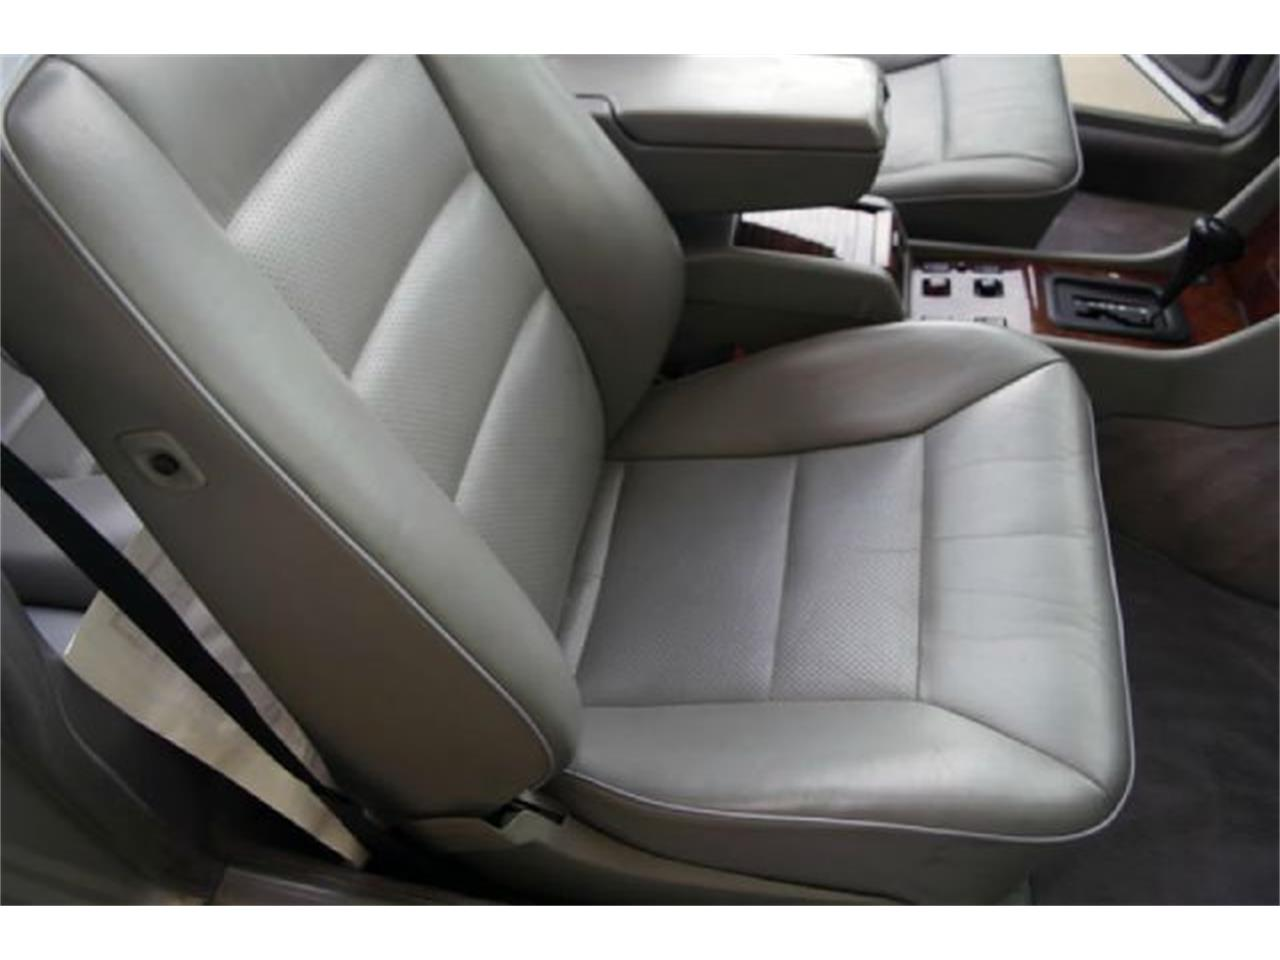 Large Picture of '95 Mercedes-Benz E-Class located in Texas - $8,995.00 Offered by ABC Dealer TEST - I36A